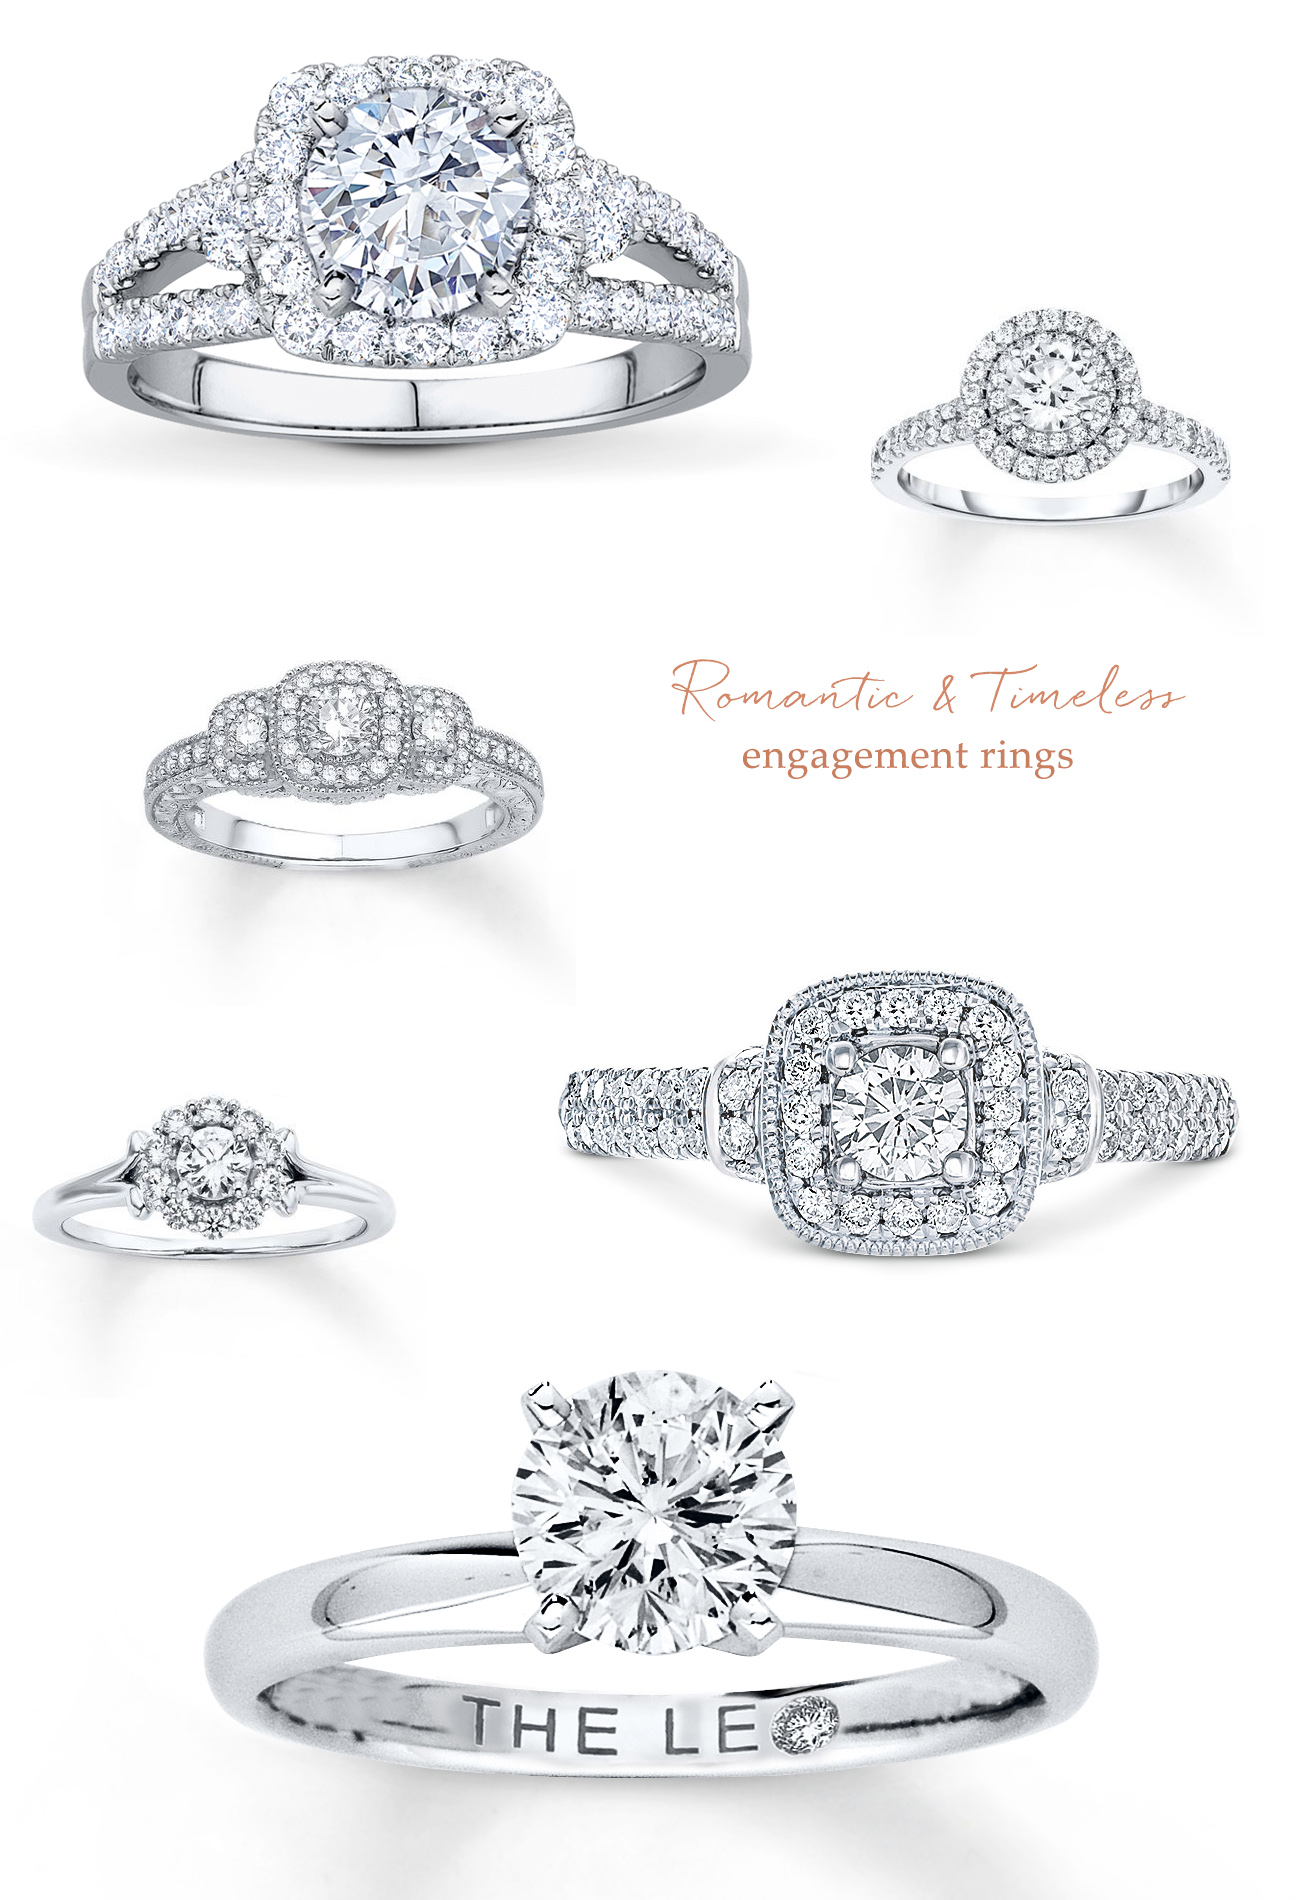 timeless engagement rings from JARED